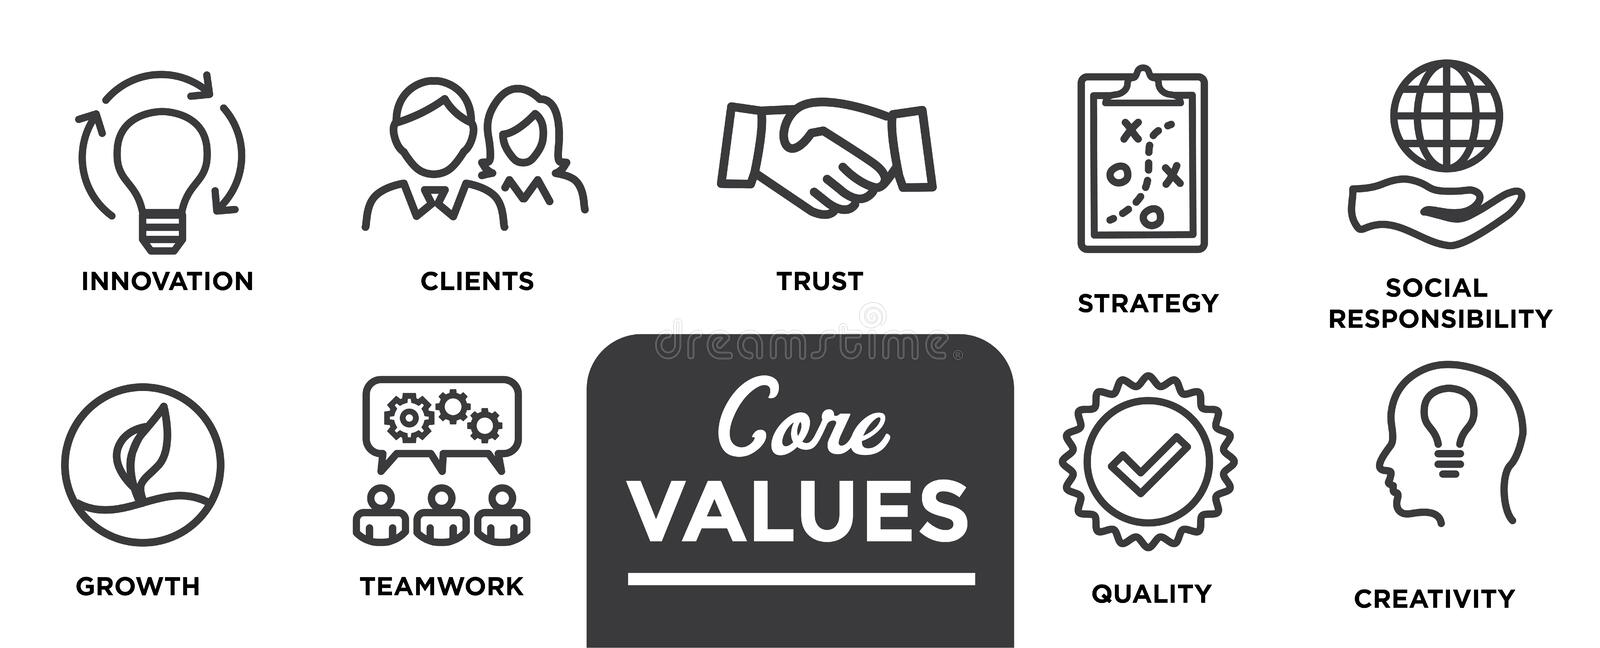 Core Values - Mission, integrity value icon set with vision, hon. Esty, passion, and collaboration as the goal / focus vector illustration